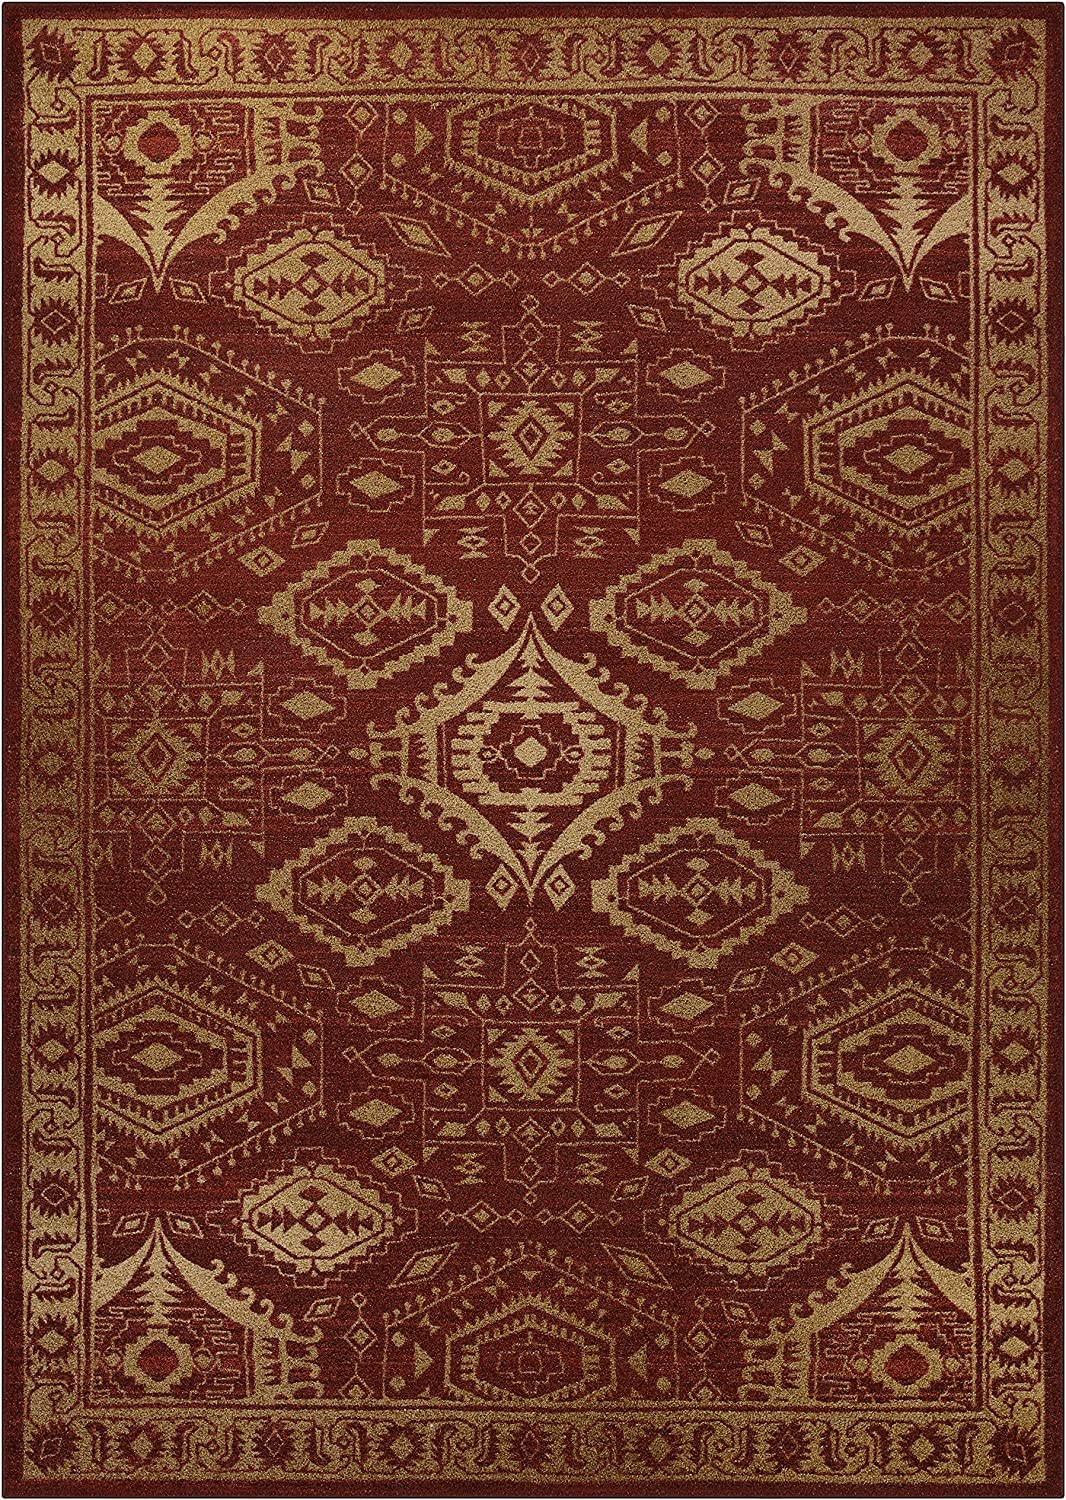 Maples Rugs Area Rug - Georgina 7 x 10 Large Area Rugs [Made in USA] for Living Room, Bedroom, and Dining Room, Red/Gold